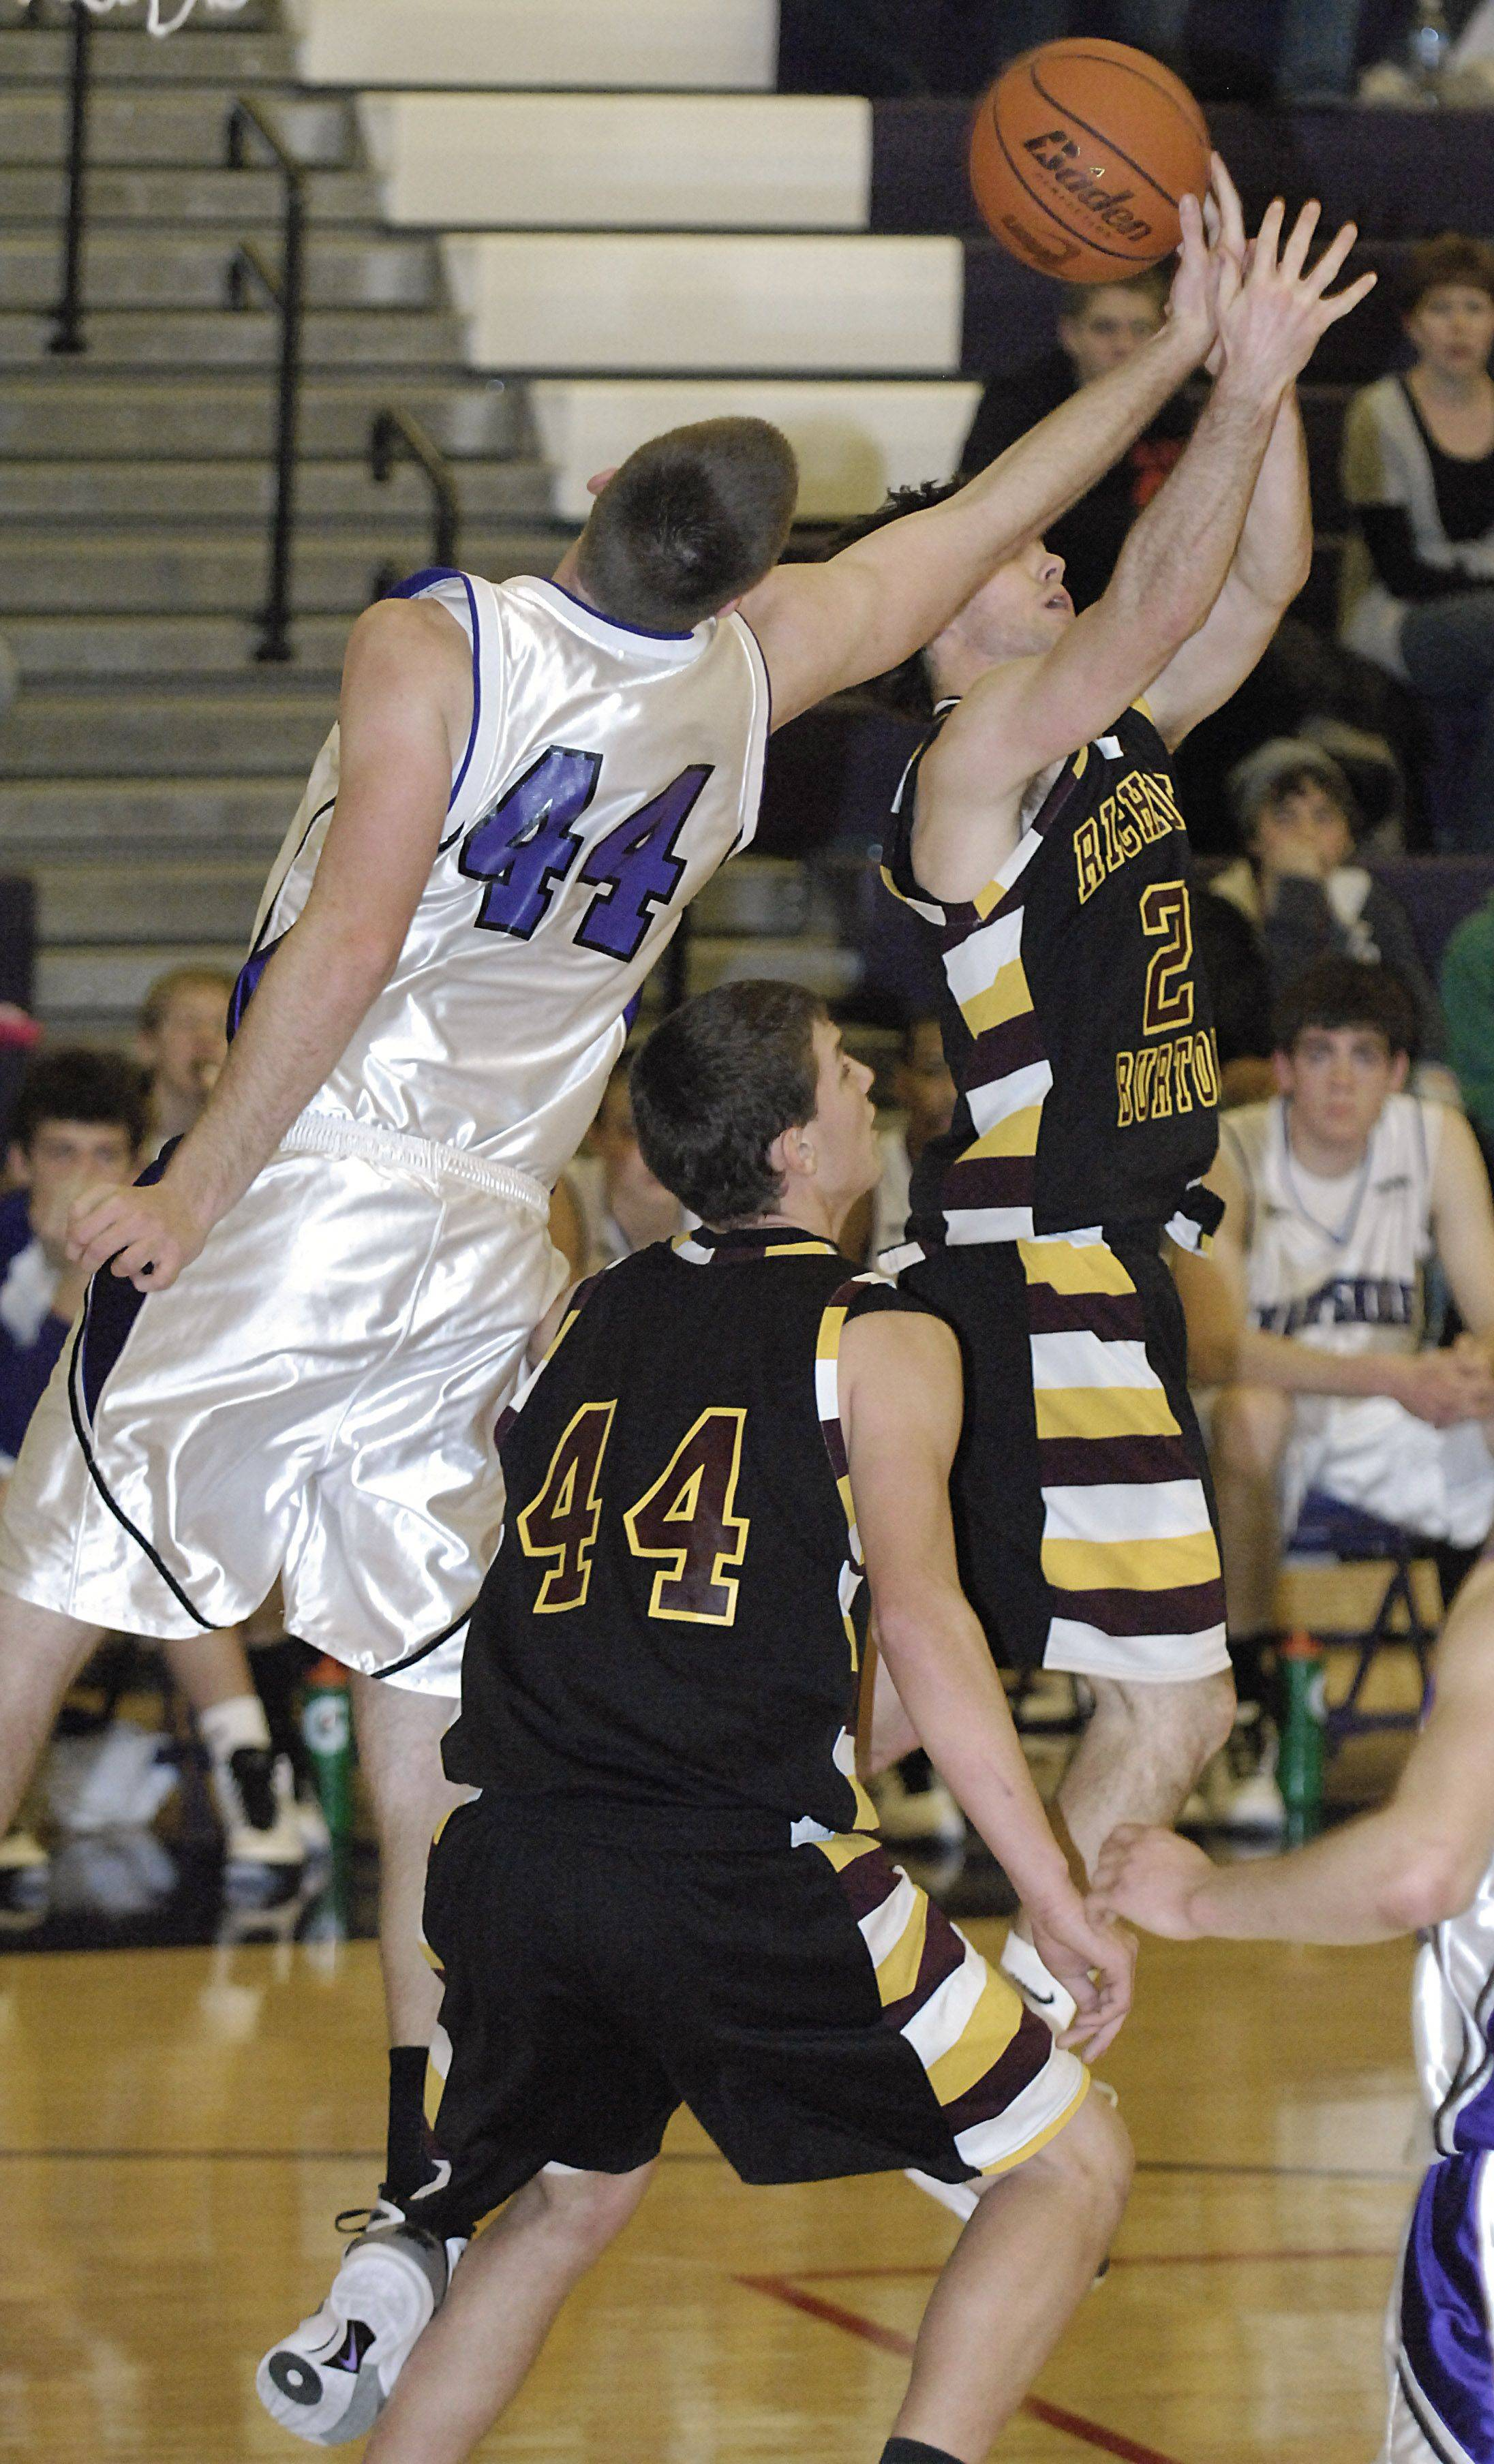 Hampshire's Tyler Watzlawick swipes a rebound from Richmond's Brandon Kinsella in the third quarter on Saturday, January 8.